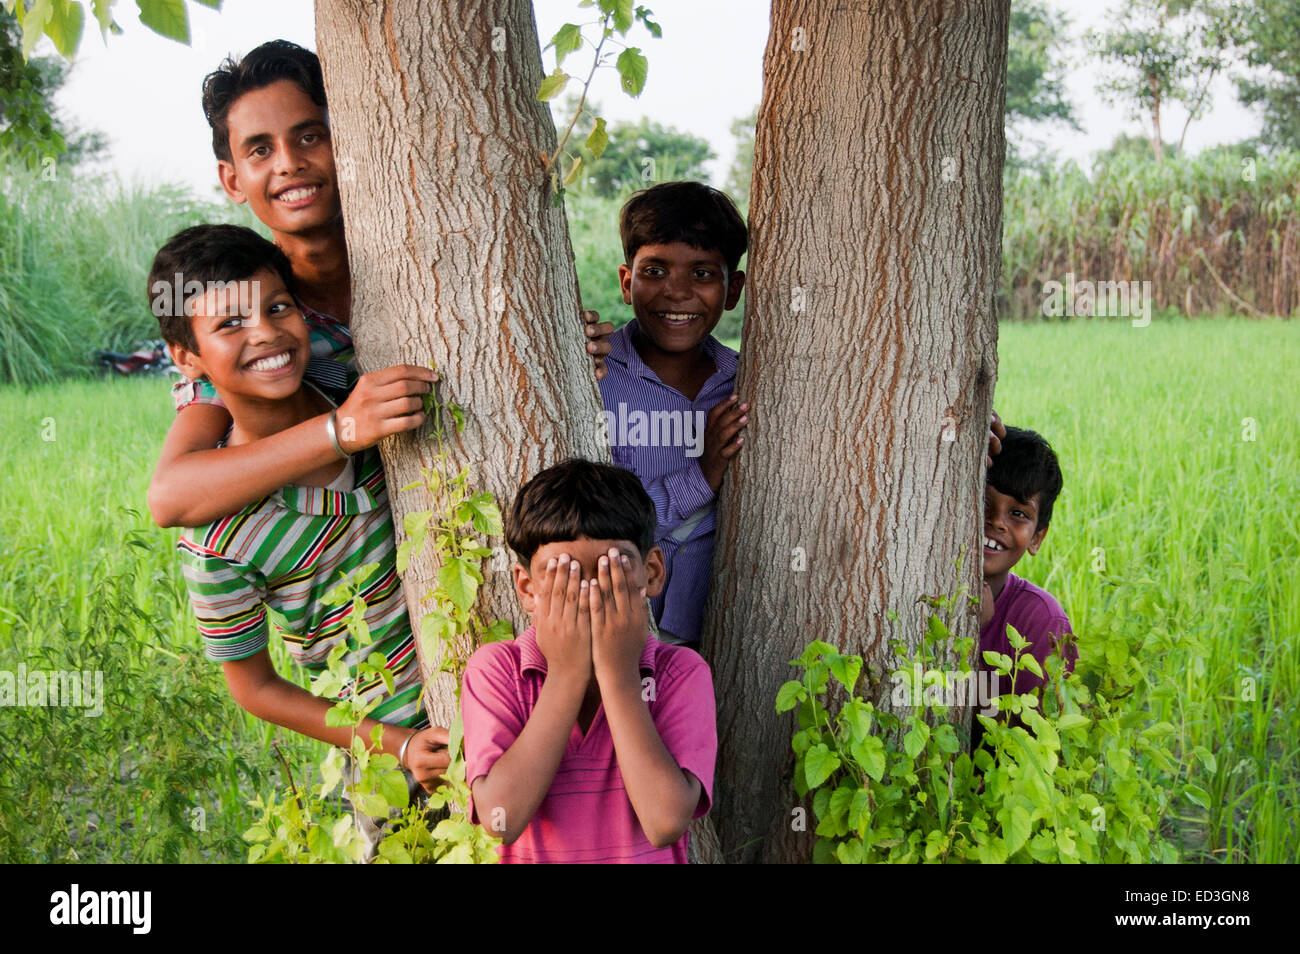 Hide And Seek Kids Indian Rural Children Group Farm Playing Hide And Seek Stock Photo